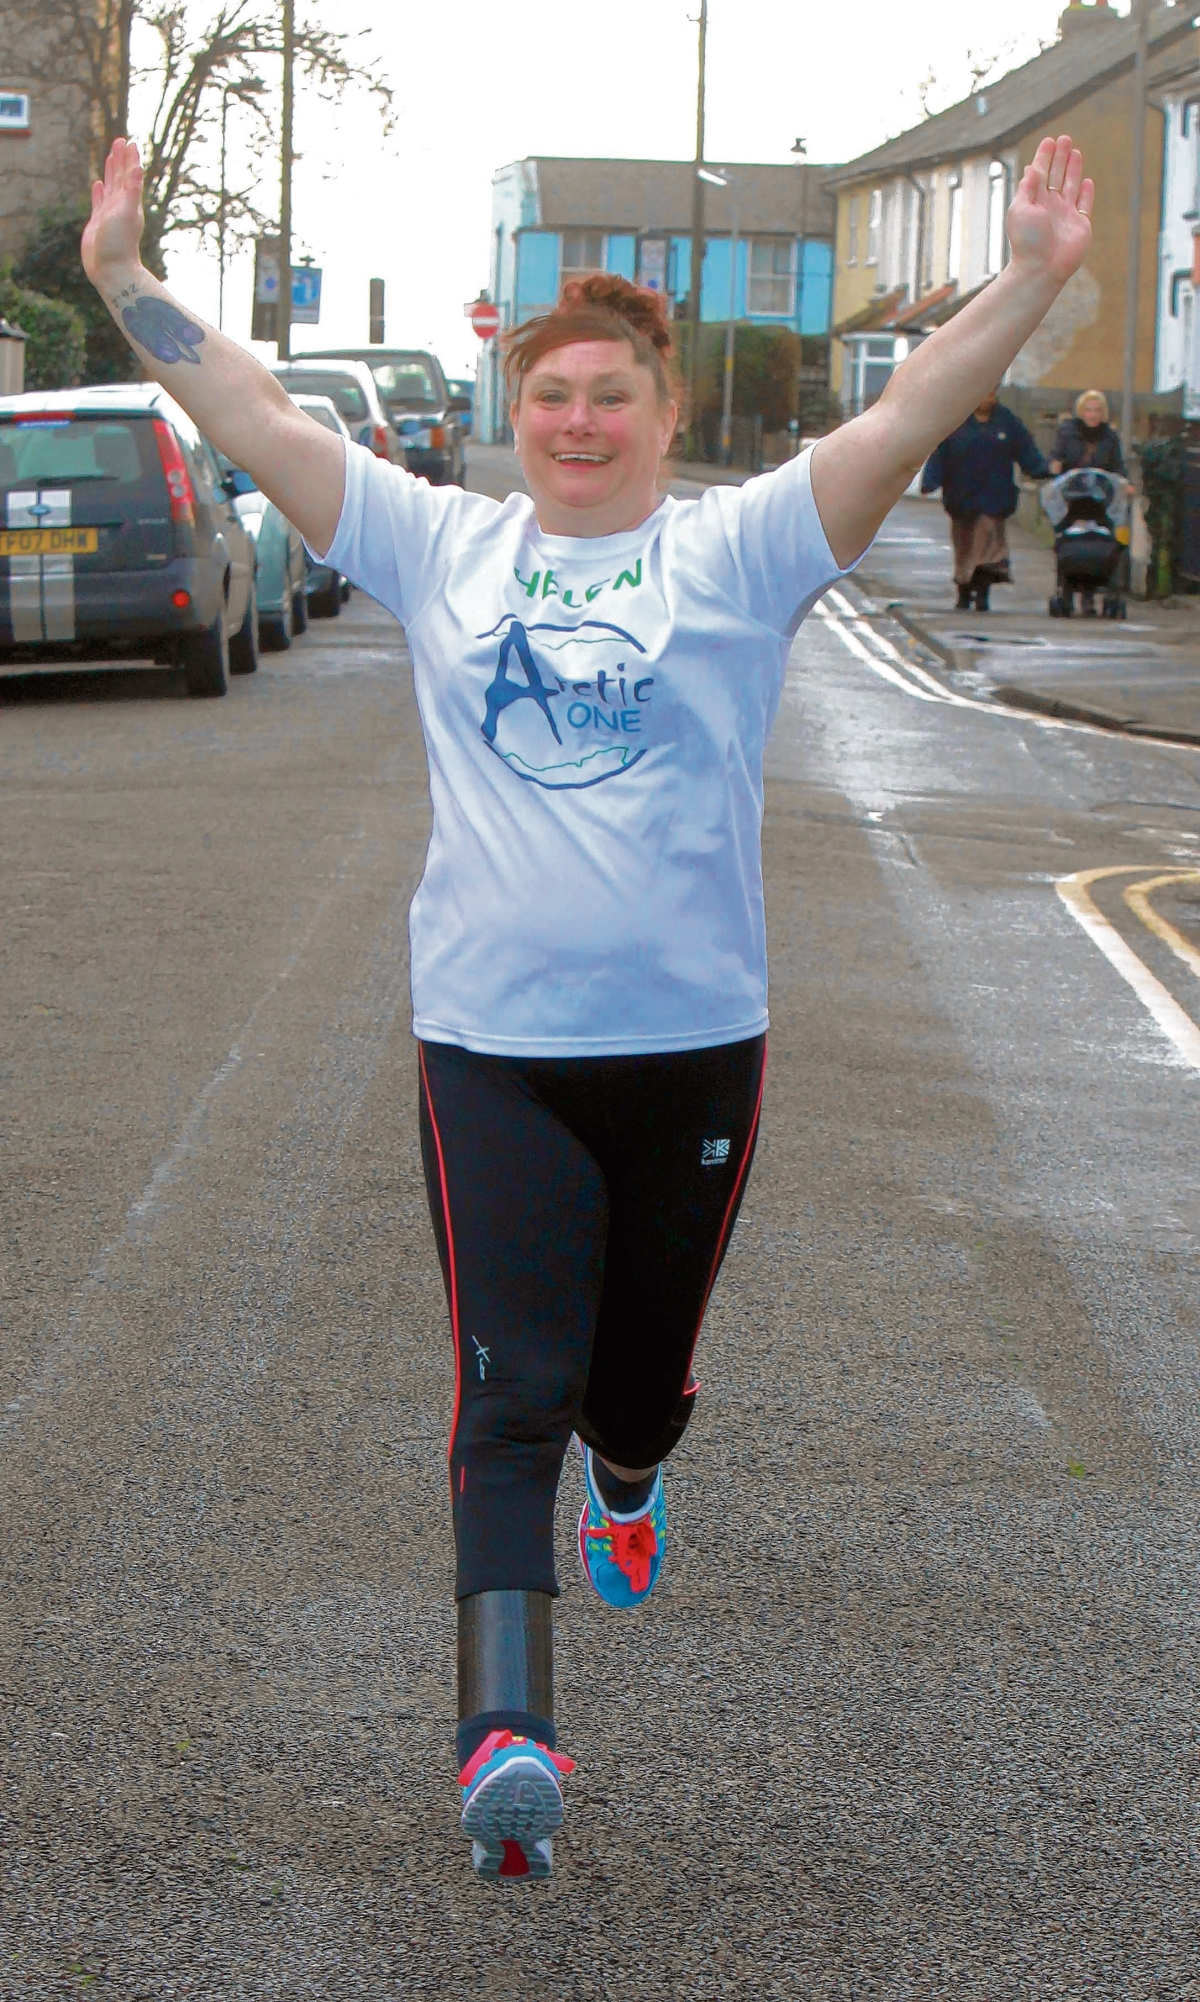 Amputee Helen close to running blade dream